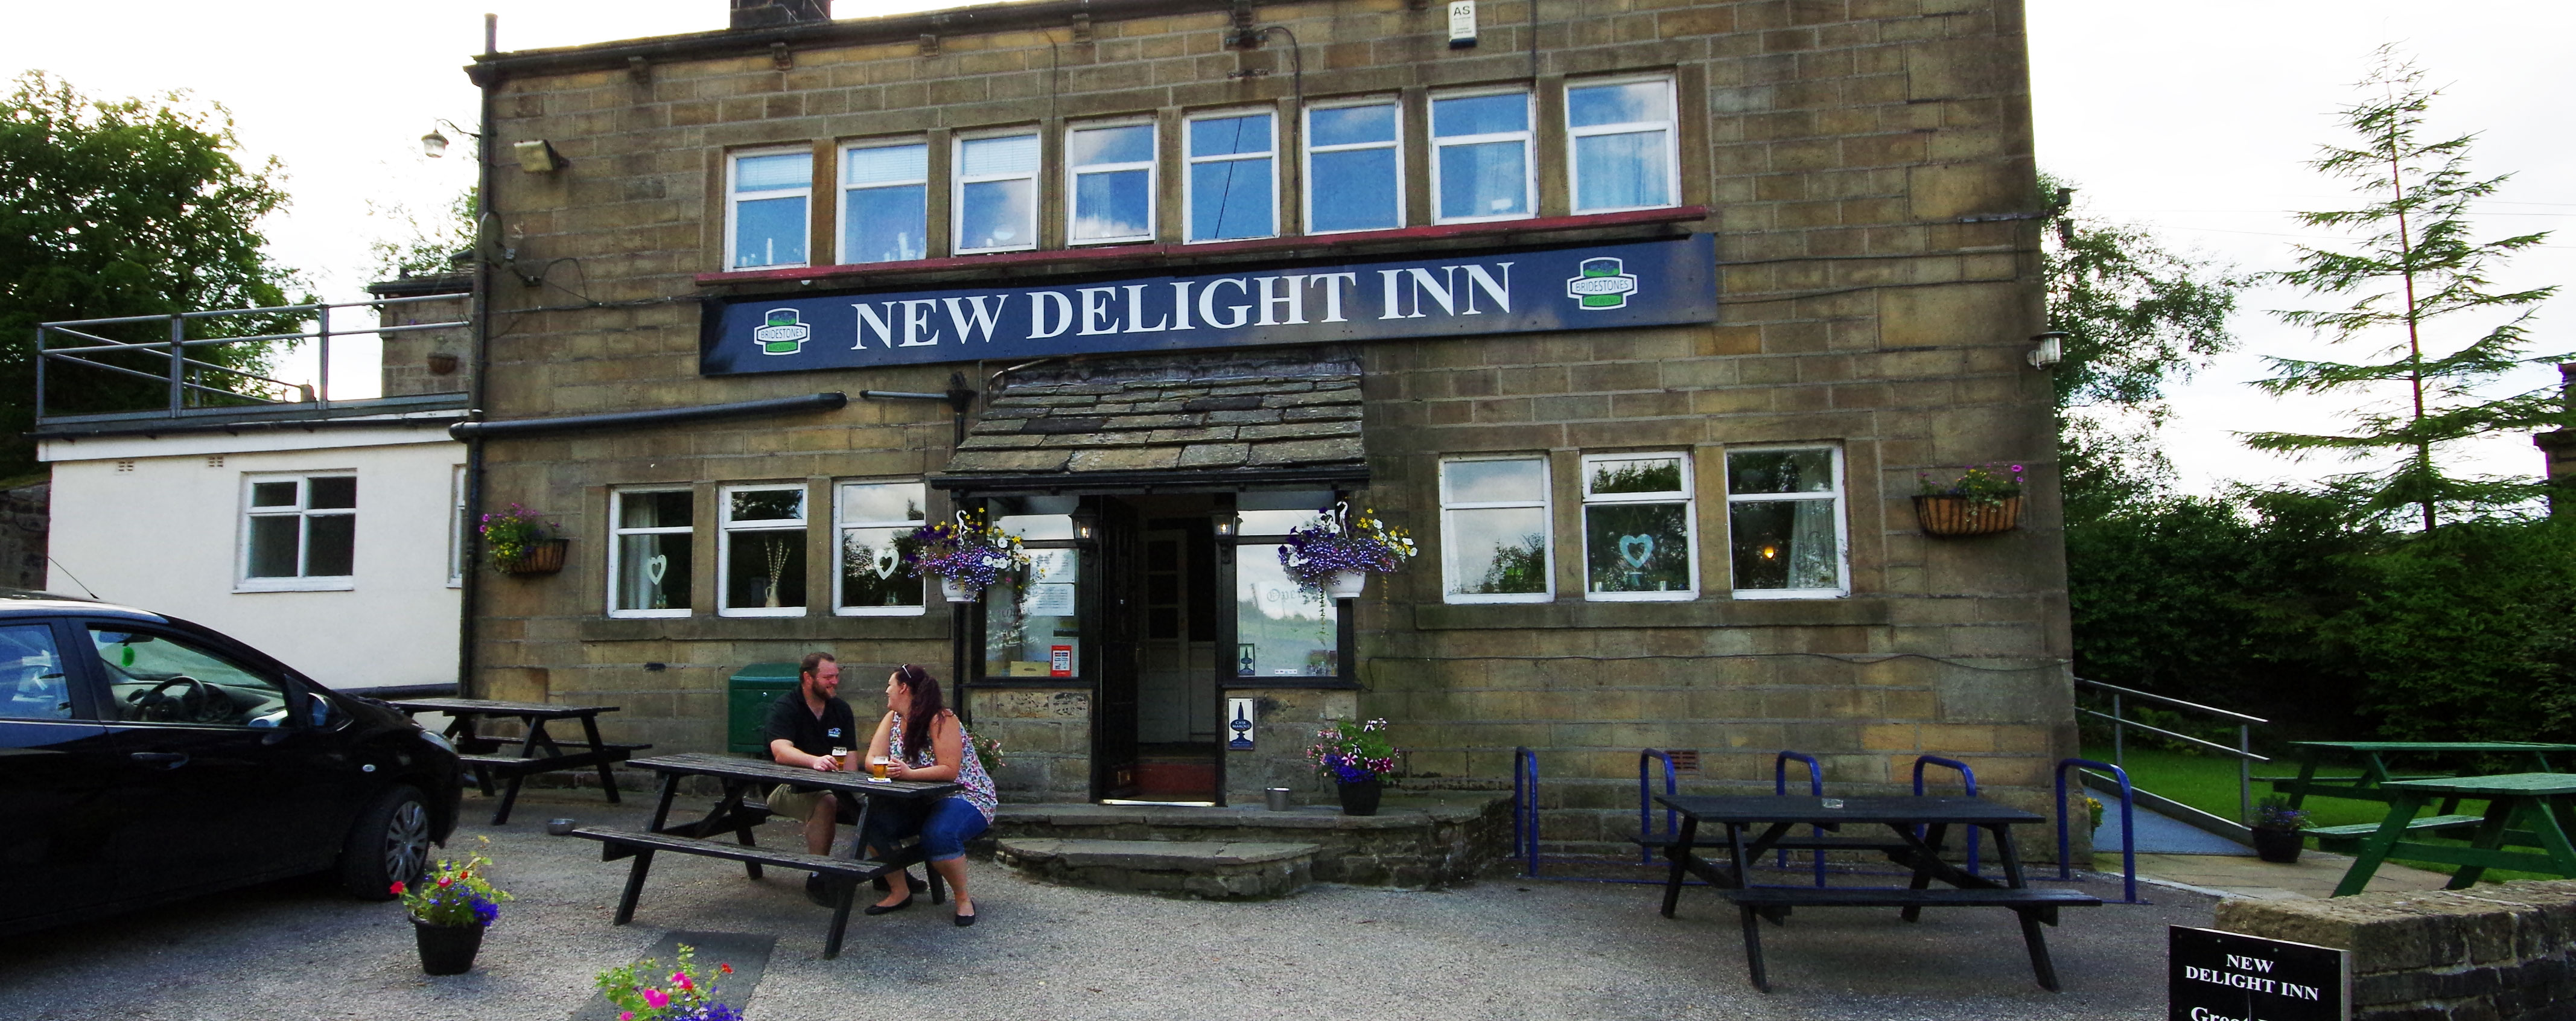 Hebden Bridge Camping, The New Delight Inn